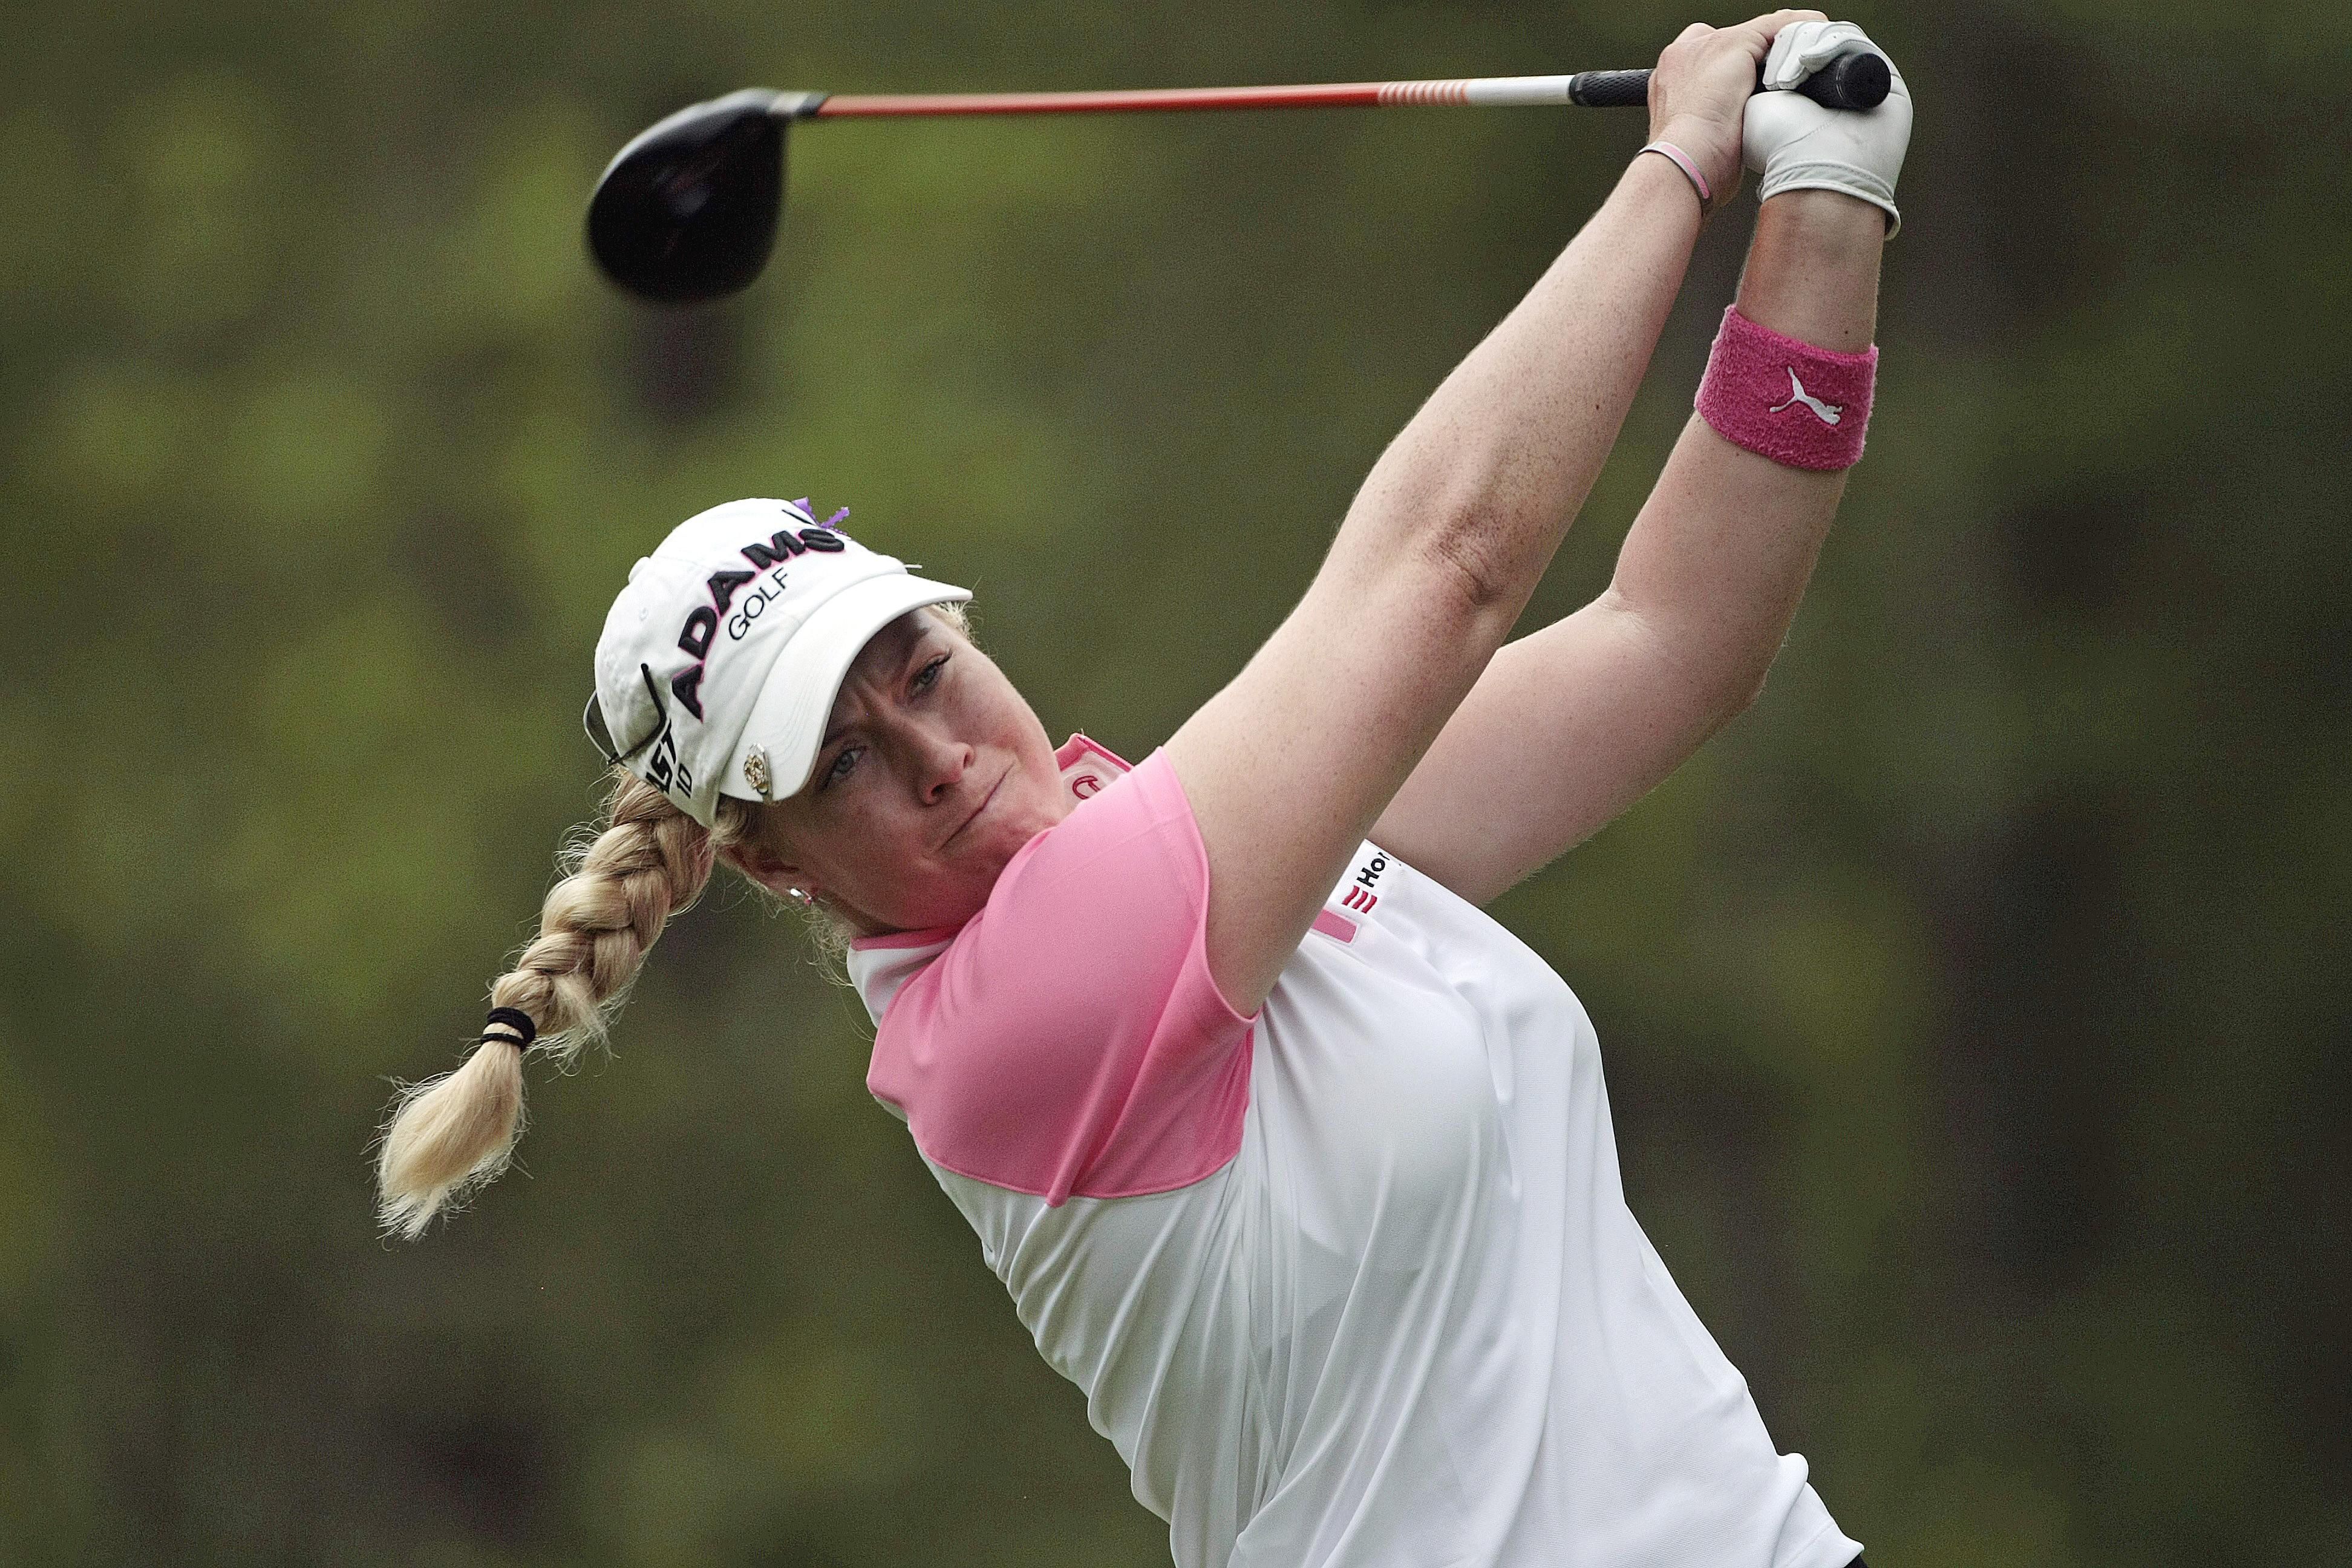 Brittany Lincicome hits a drive during the 2010 Bell Micro LPGA Classic